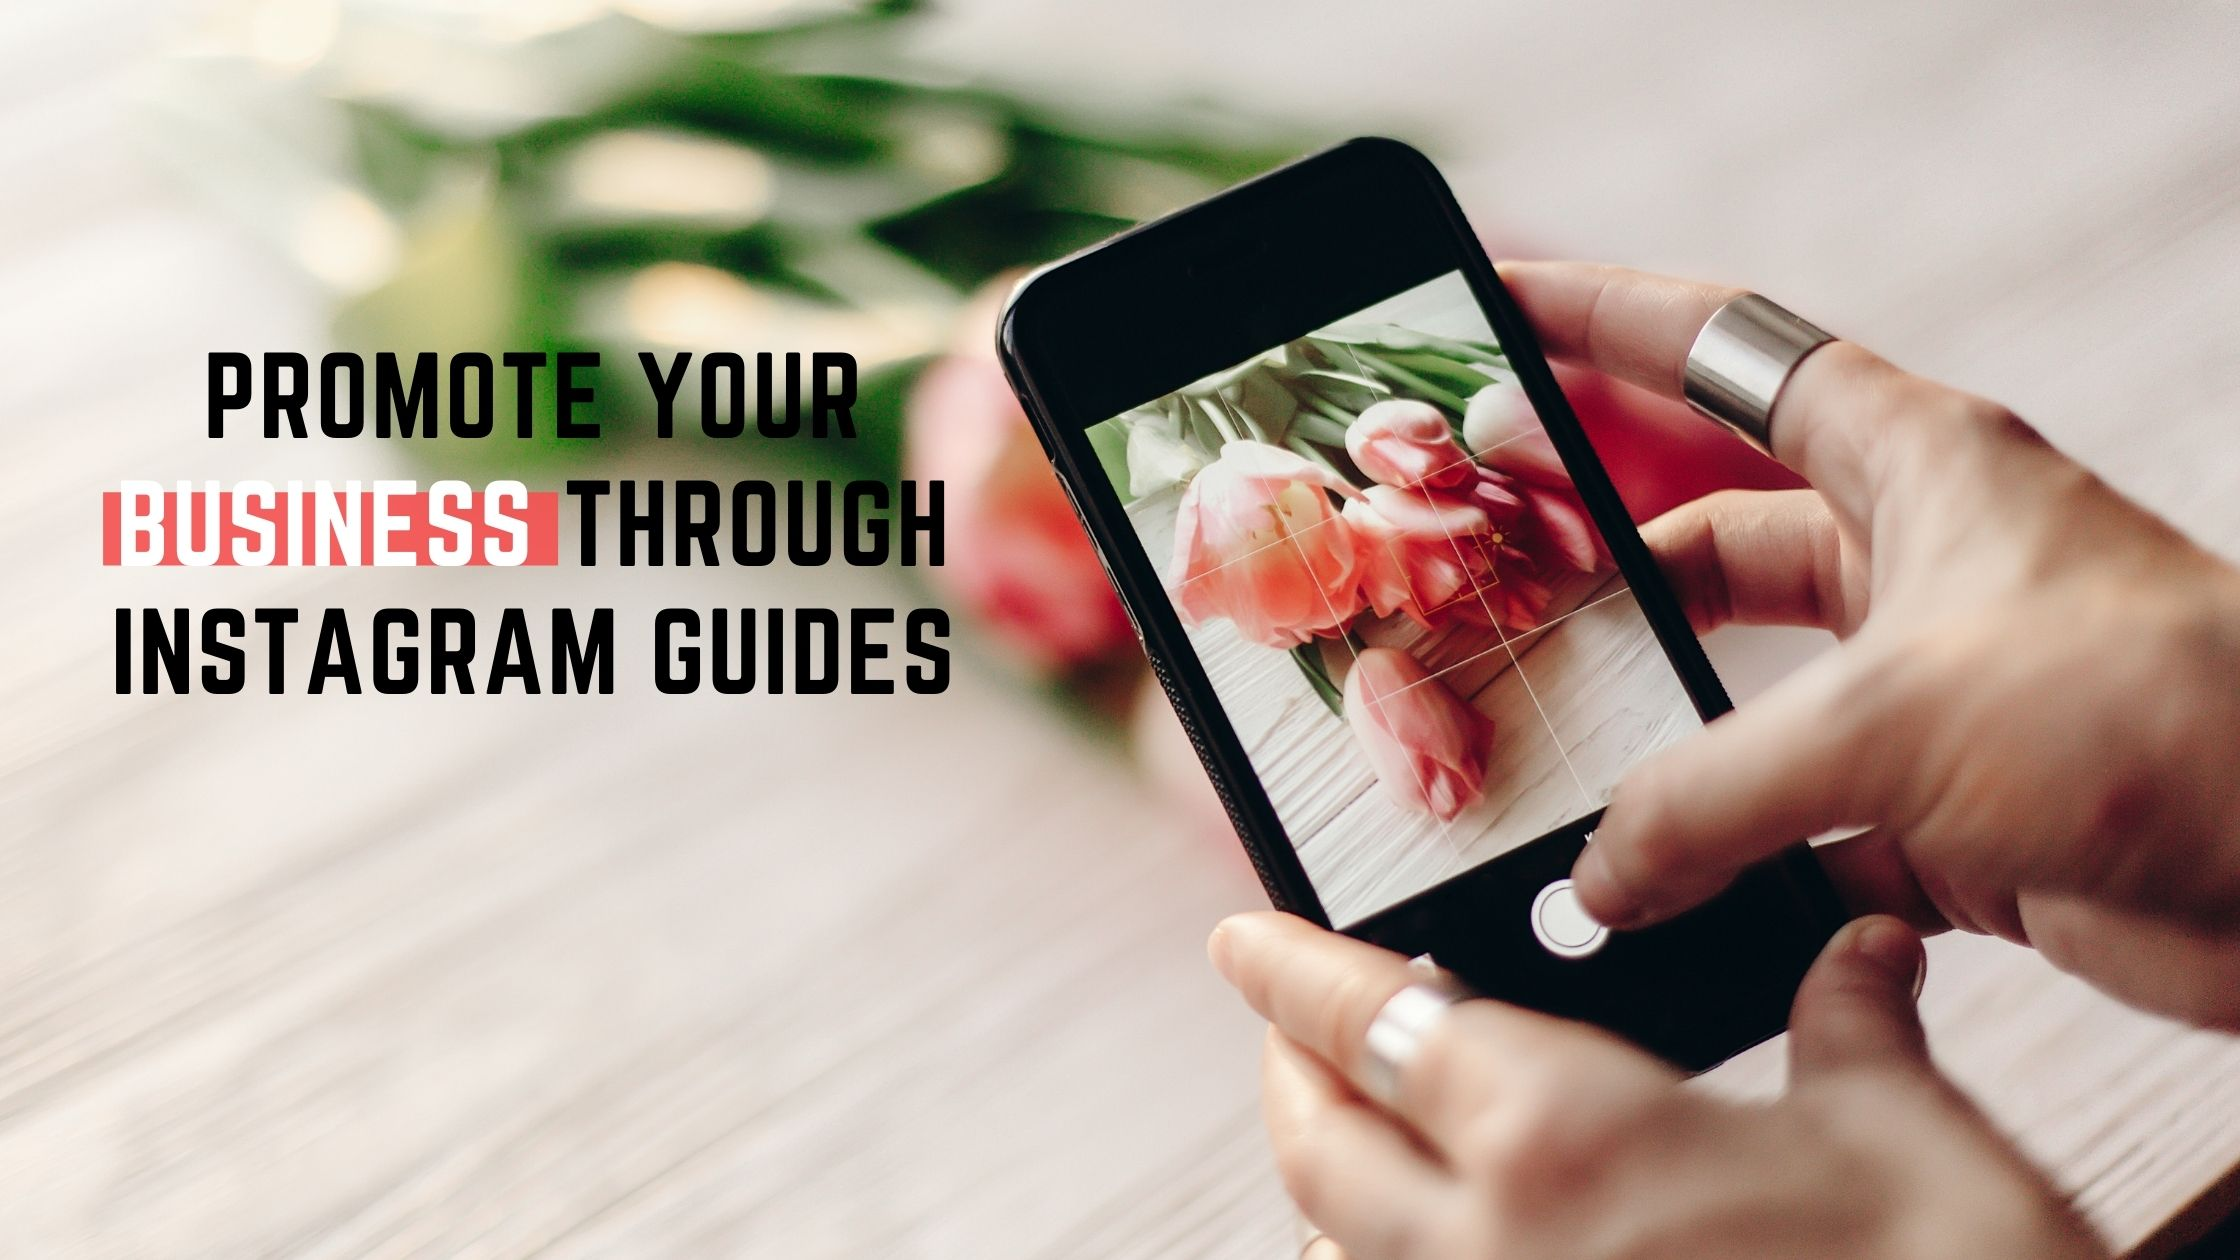 Promote Your Business Through Instagram Guides